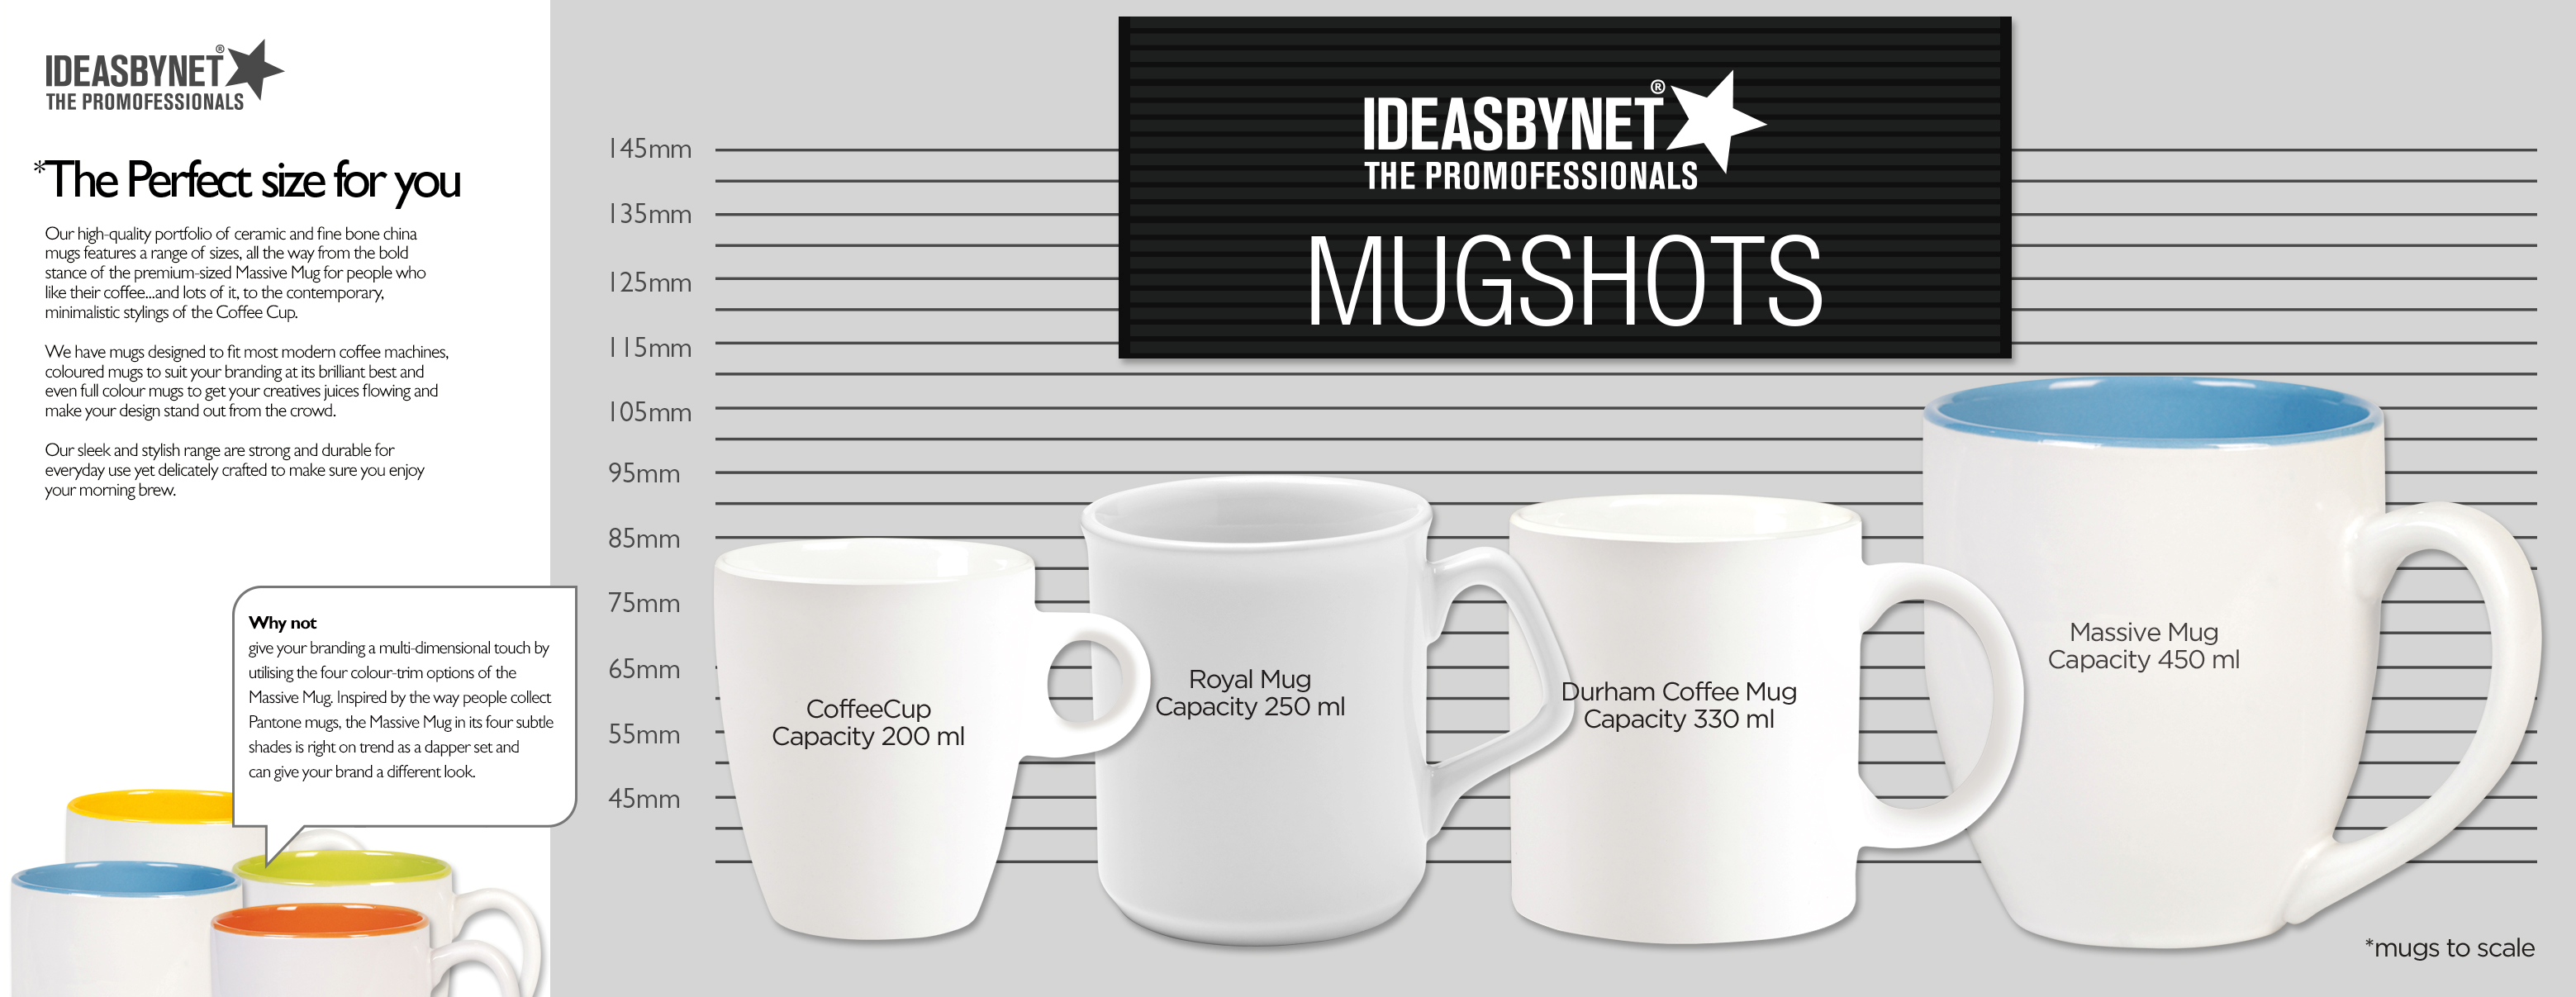 Find Out More About Our Mug Family And Get Sizes Explained Here